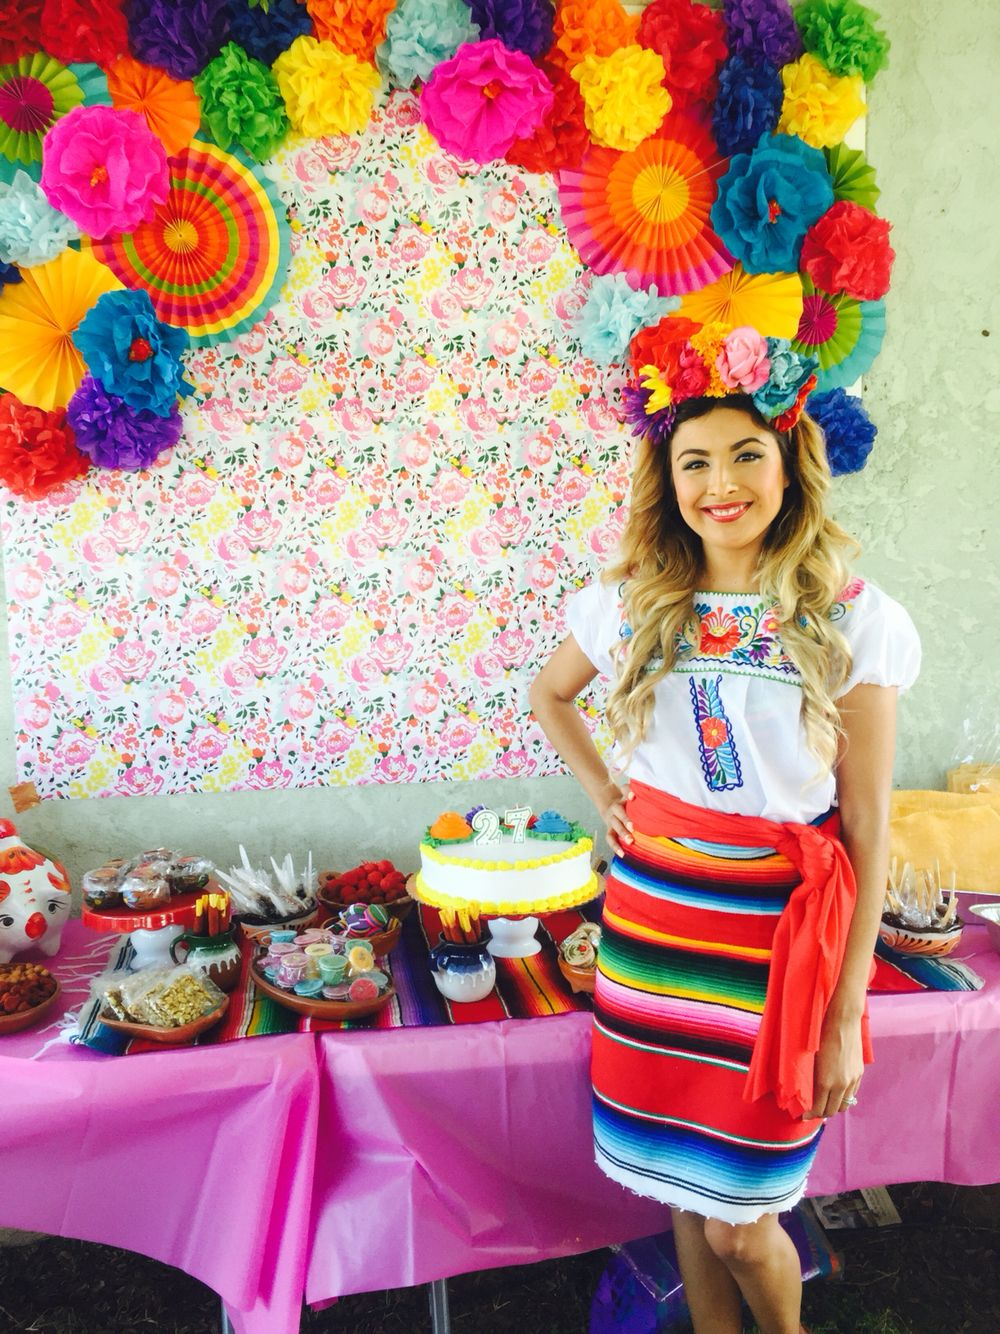 Mexican fiesta party decorating ideas hosting guide - Flower Backdrop Mexican Theme Fiesta Mexican Theme Outfit For Fiesta Zarape Skirt Embroidered